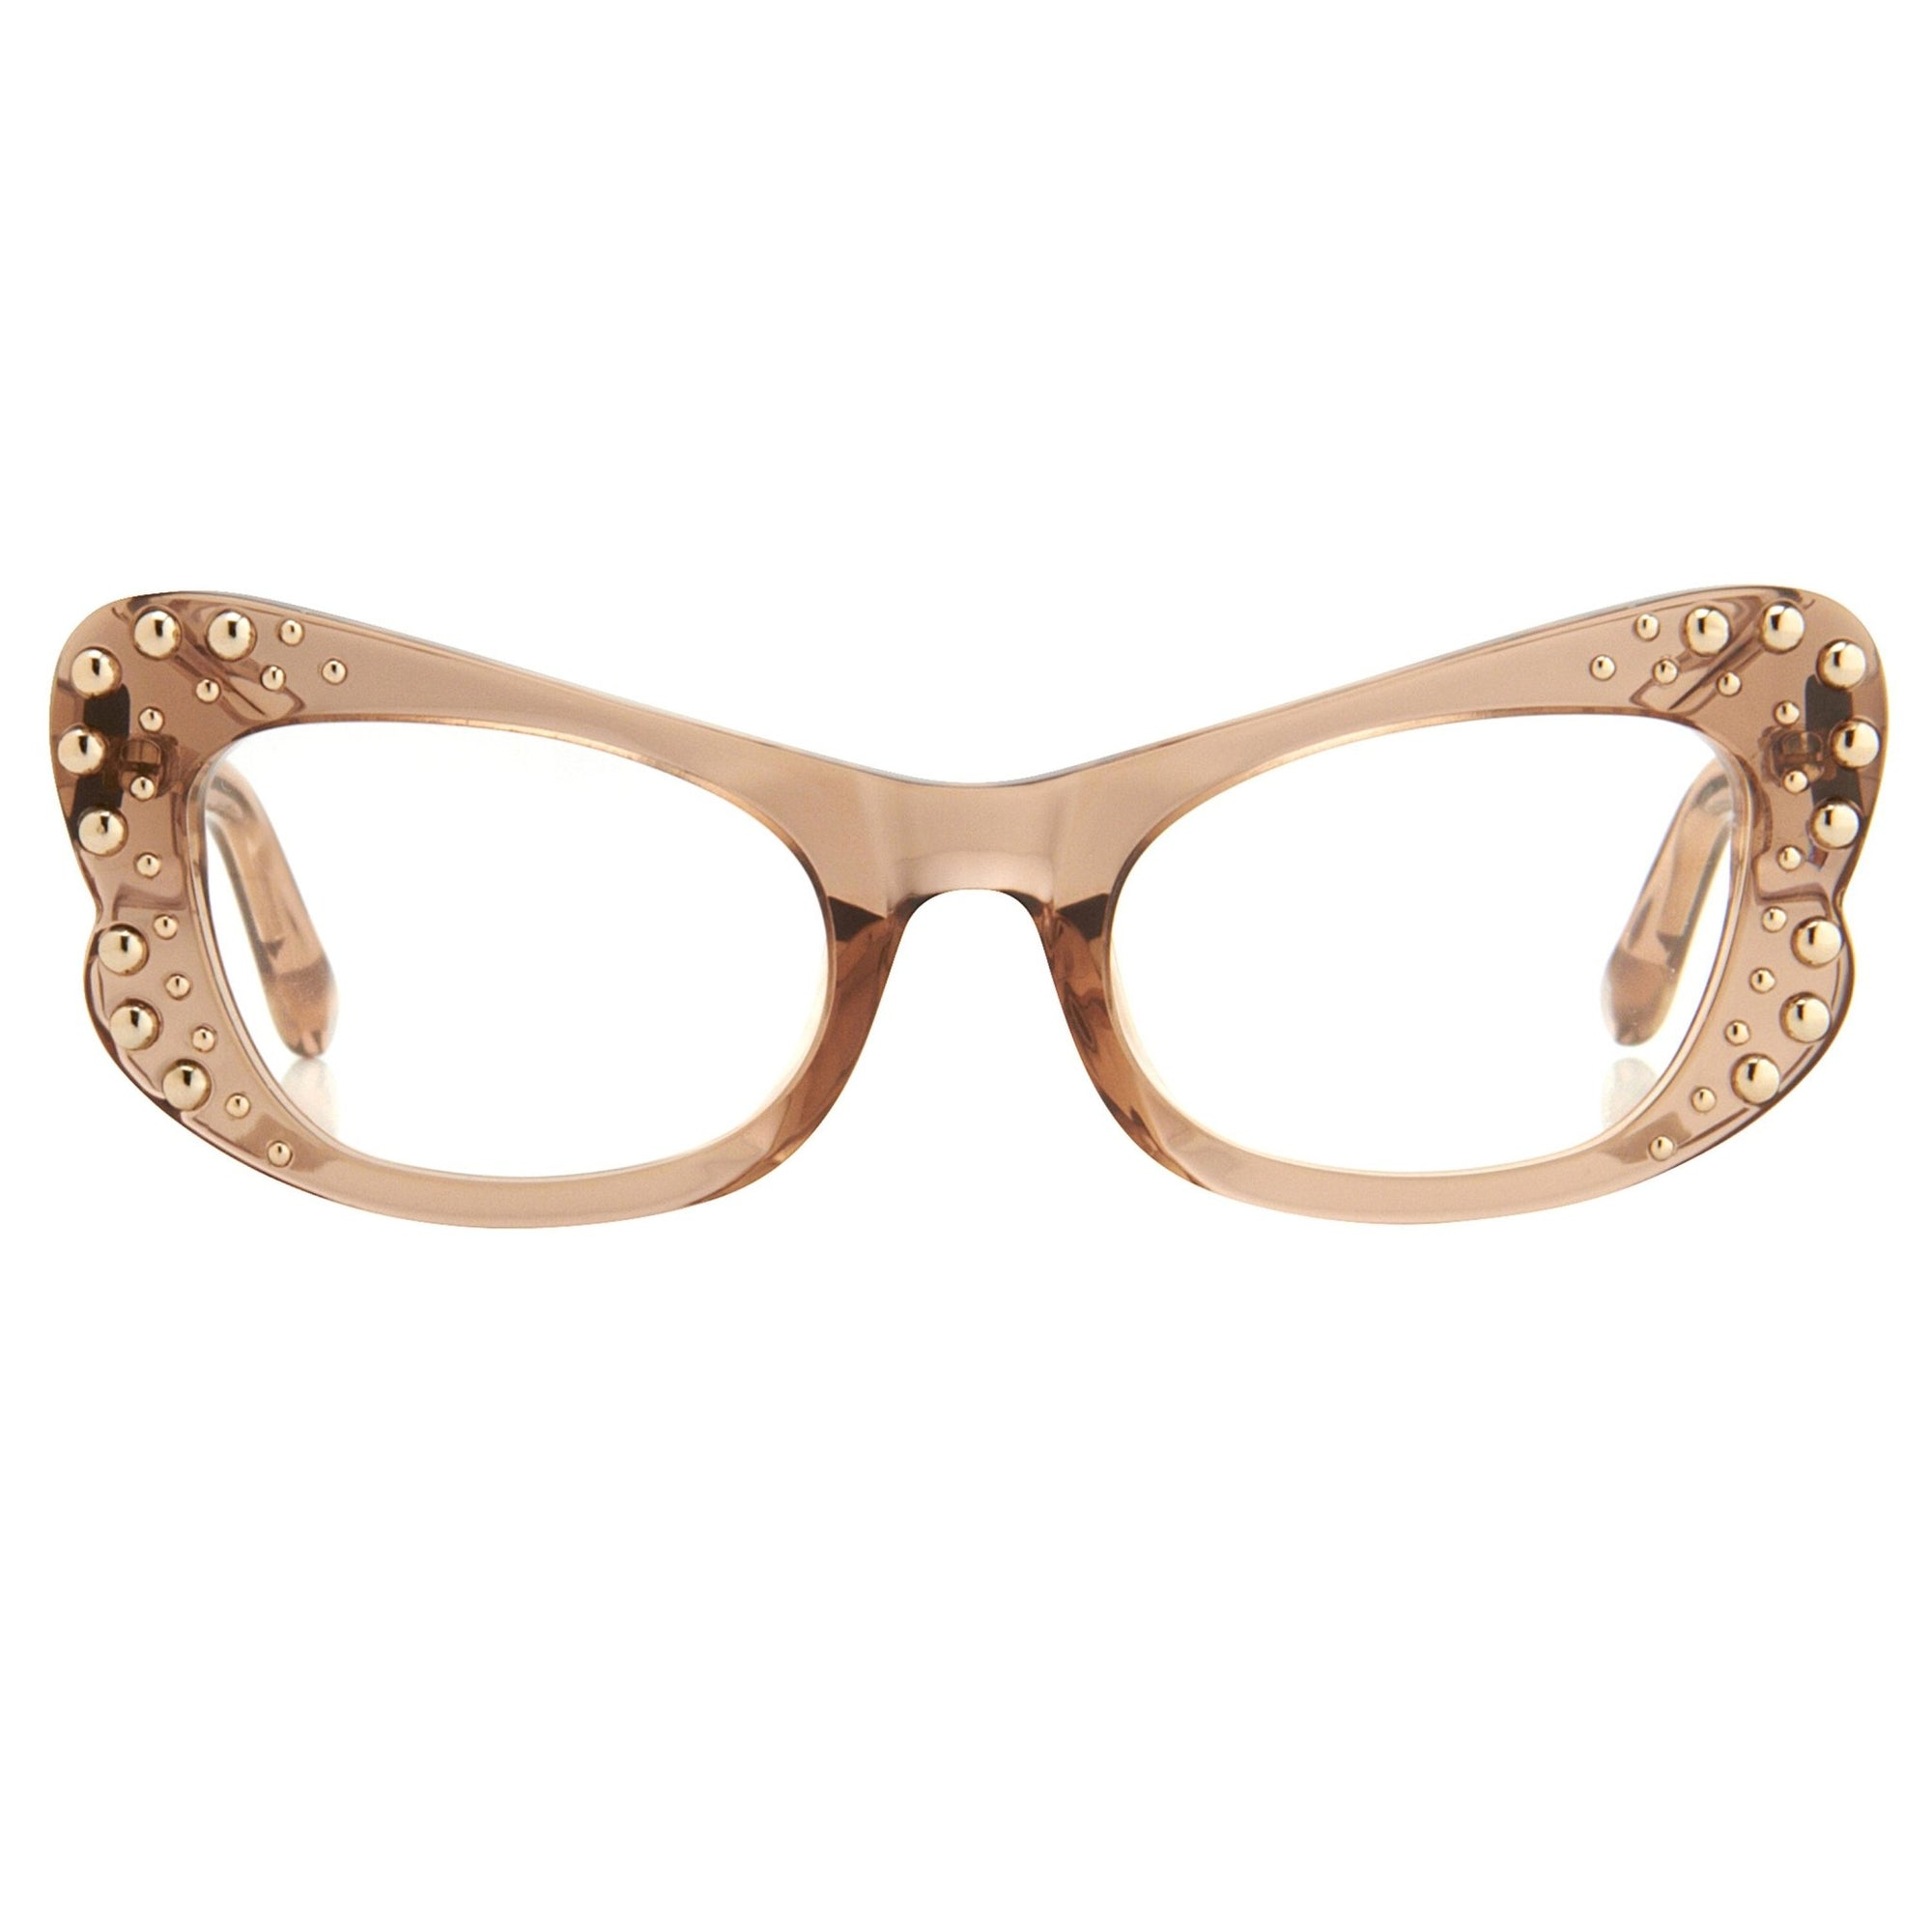 Agent Provocateur Eyeglasses Butterfly Brown - Watches & Crystals